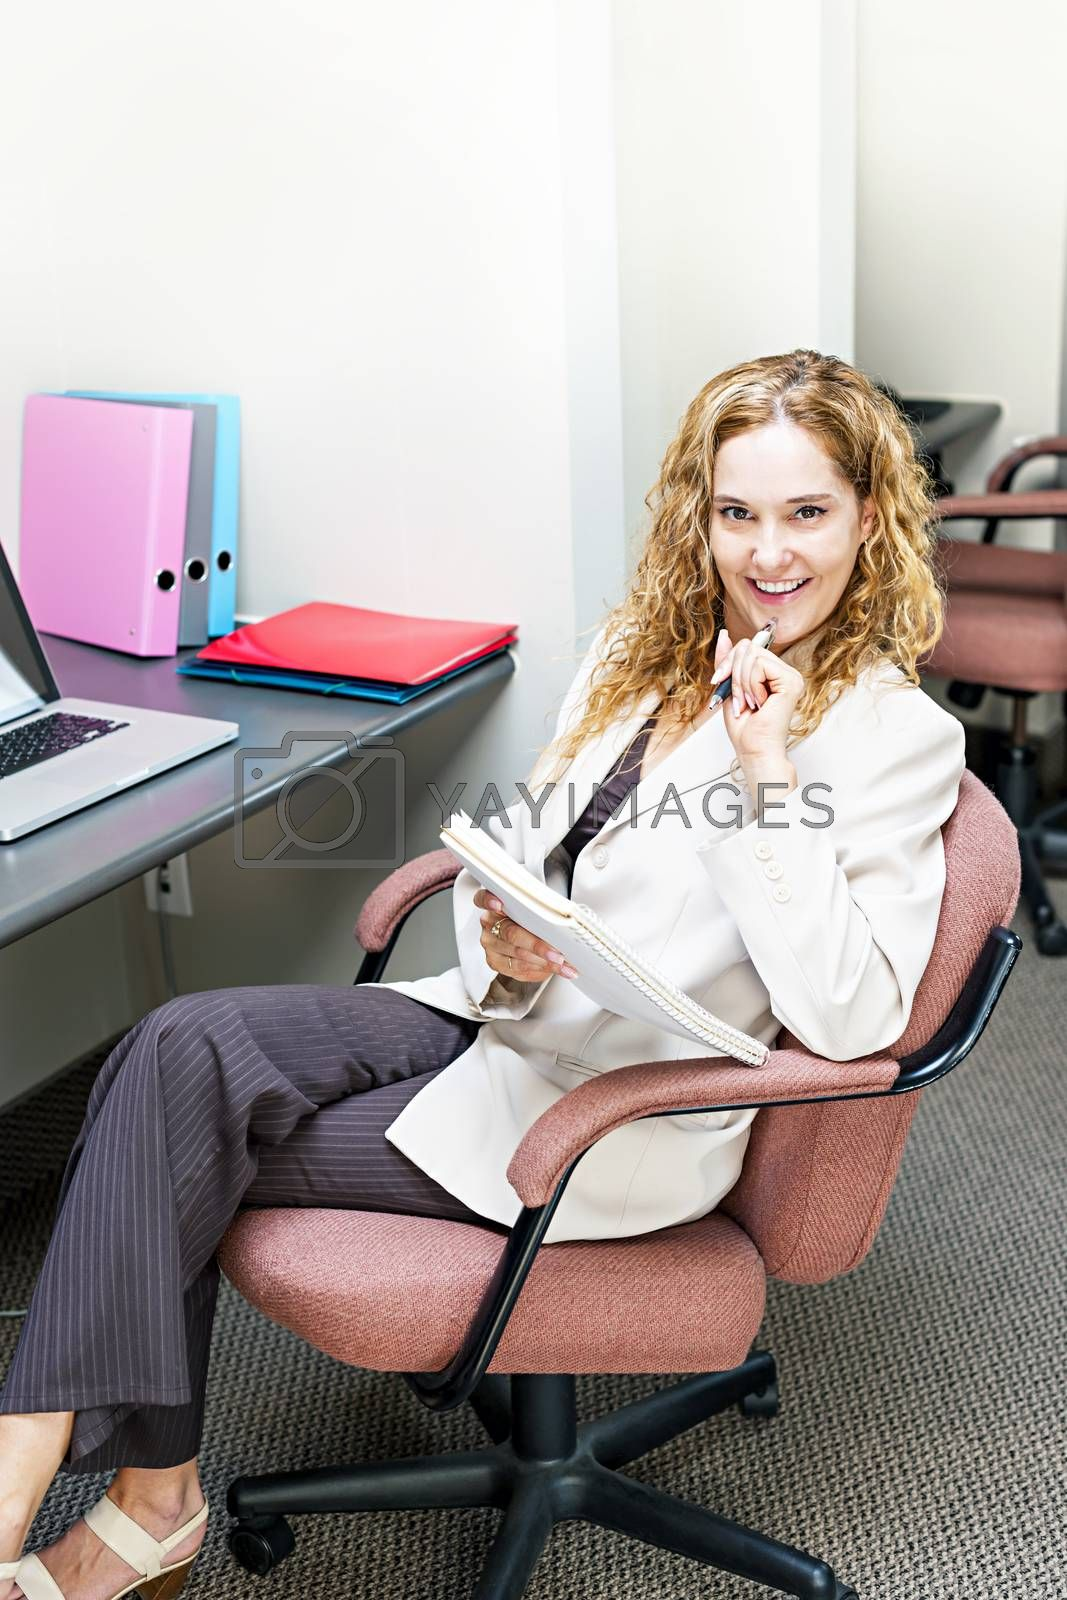 Smiling businesswoman thinking of ideas in office workstation